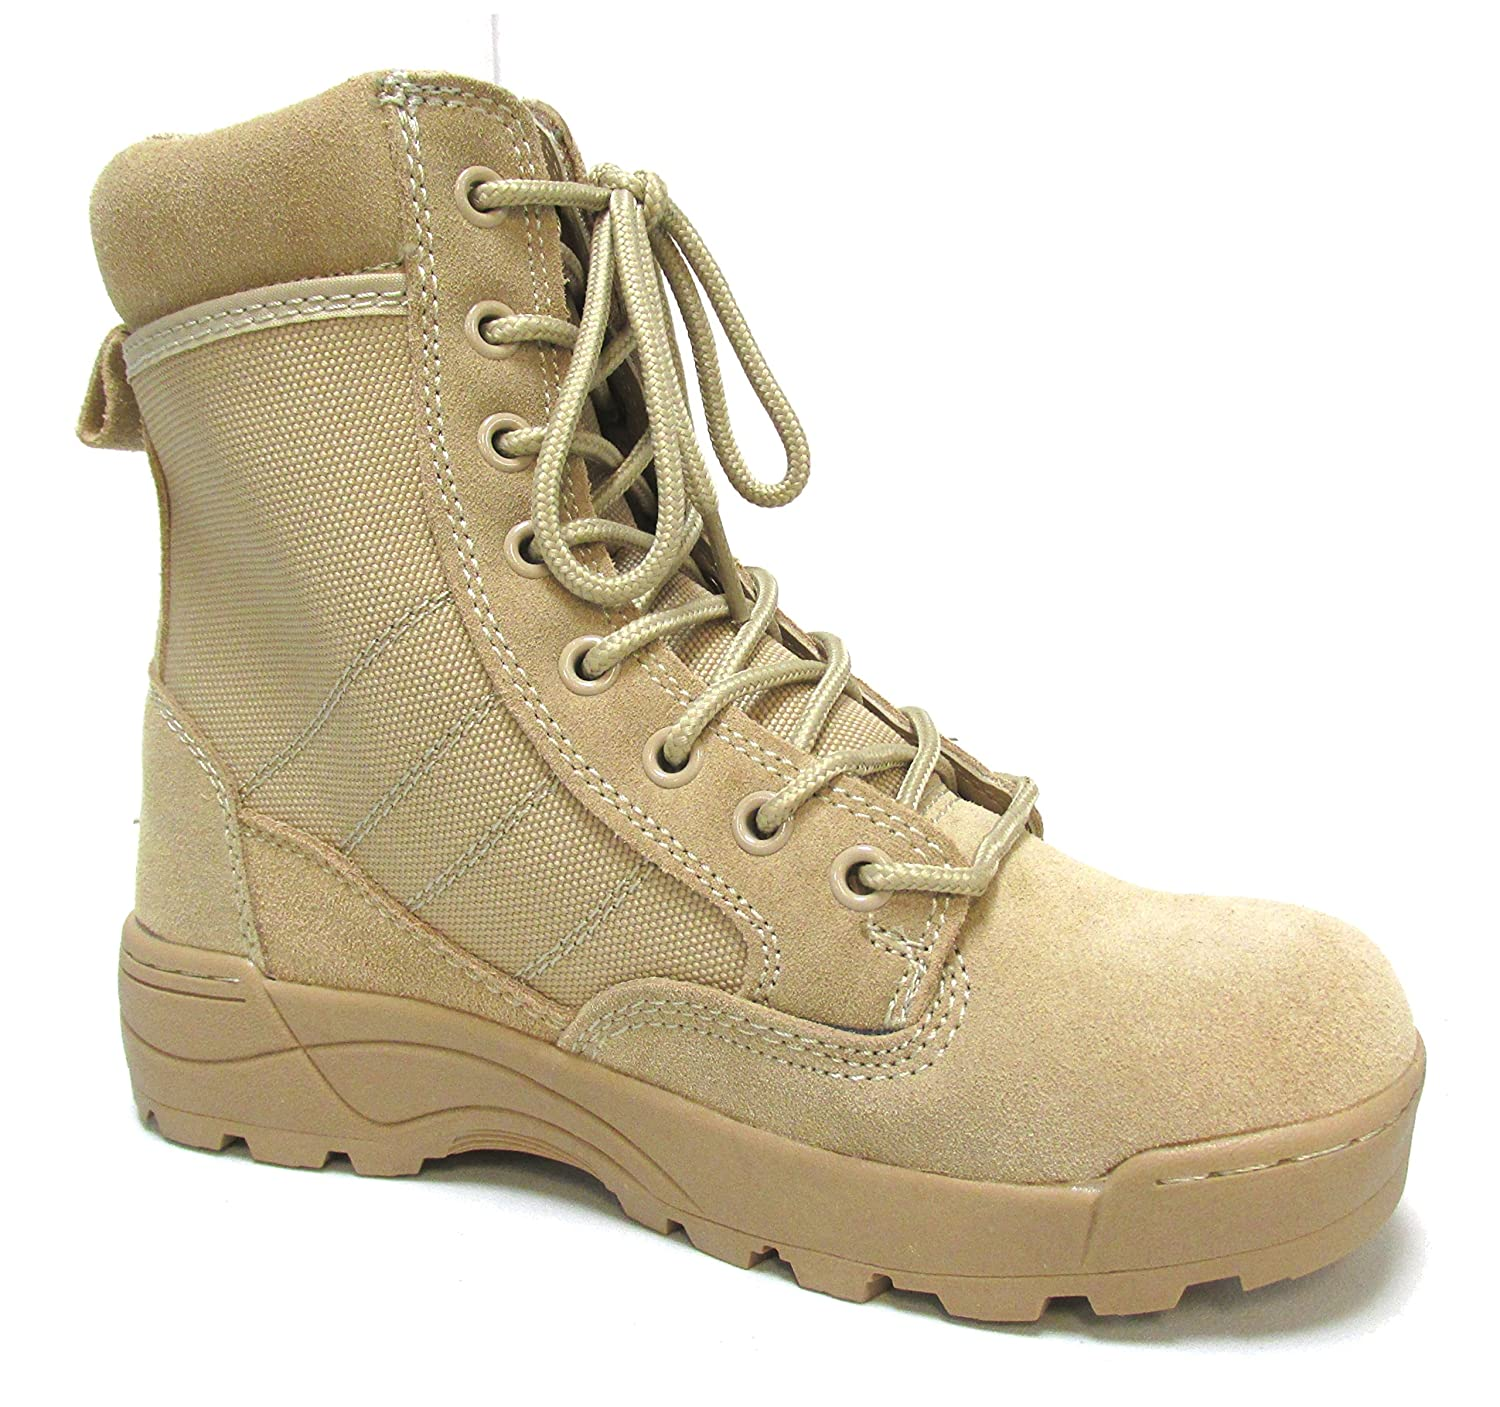 Military Uniform Supply Desert Combat Boots